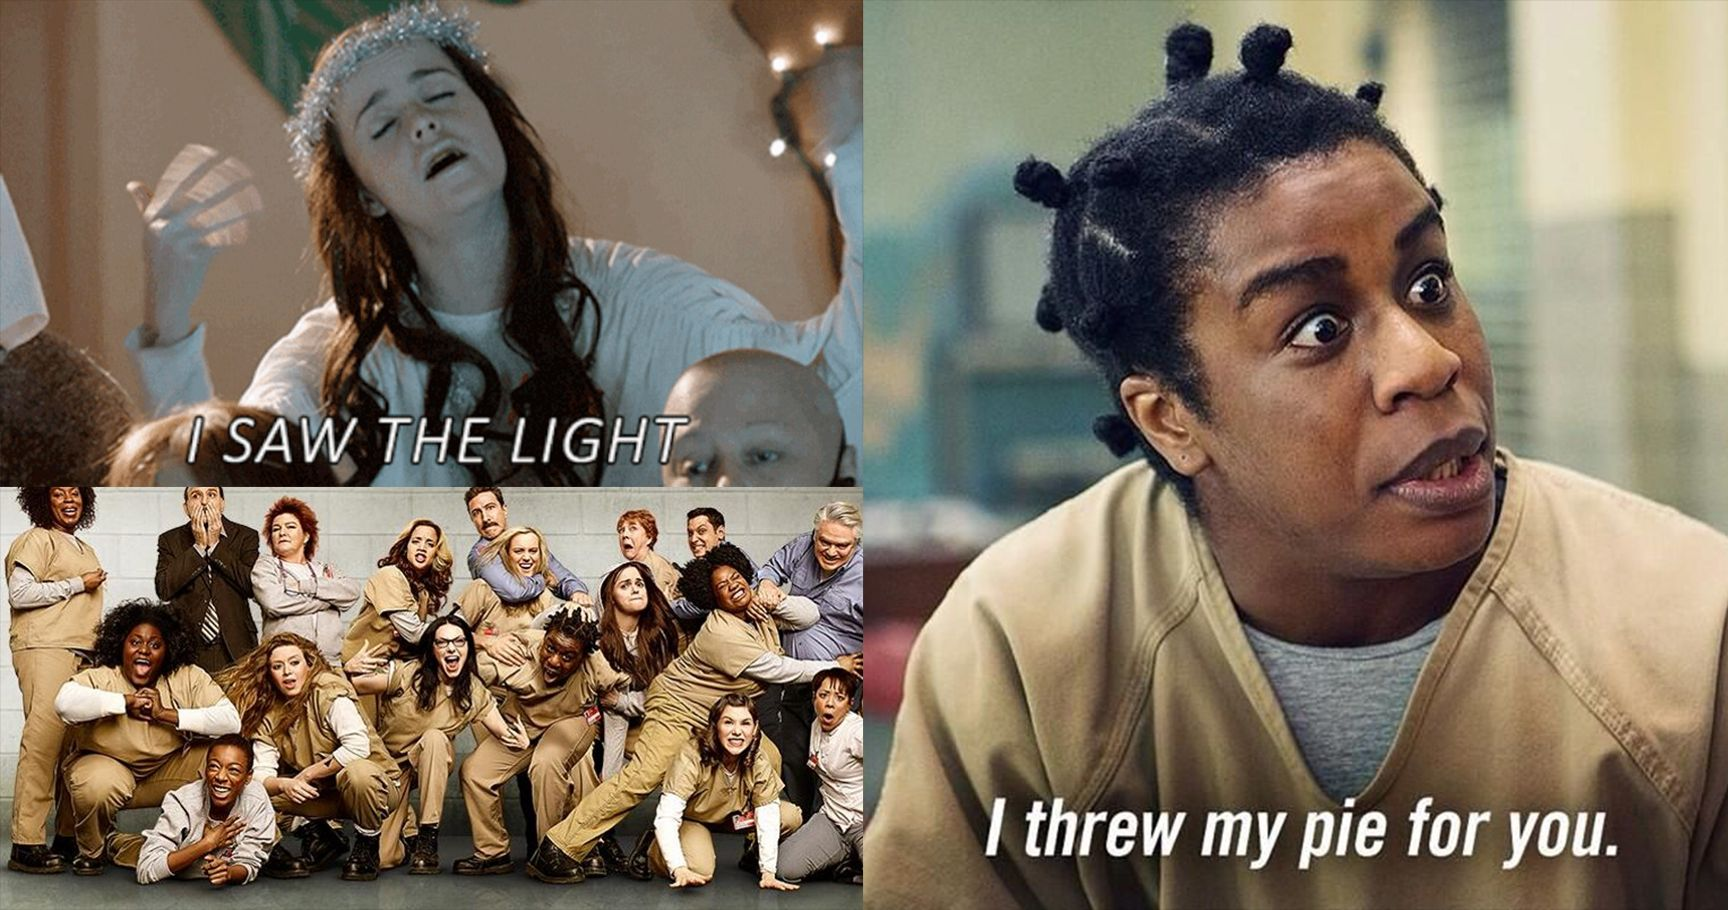 15 Of The Best 'Orange is The New Black' Moments